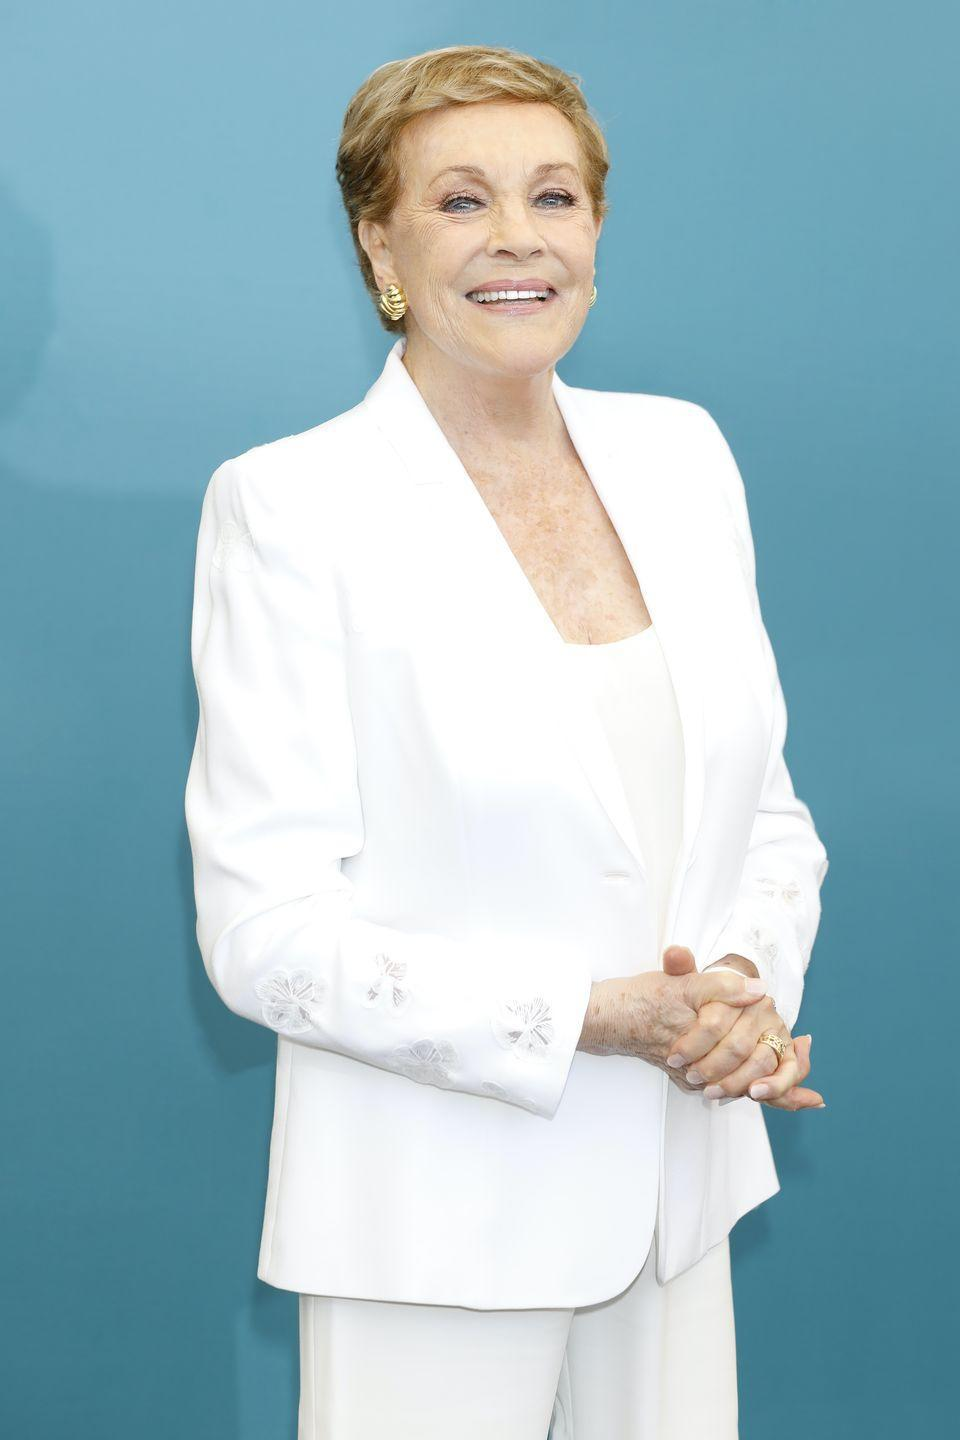 <p>Lady Whistledown, who narrates the show and serves as Regency London's most prominent gossip columnist, is rarely seen, but still makes quite the impact. She'll be voiced by Queen Clarisse herself, aka Julie Andrews, who has been working almost exclusively as a voice actor since the early 2000s, with credits including <em>Aquaman</em>, <em>Despicable Me</em>, and three of the four <em>Shrek</em> films.</p>